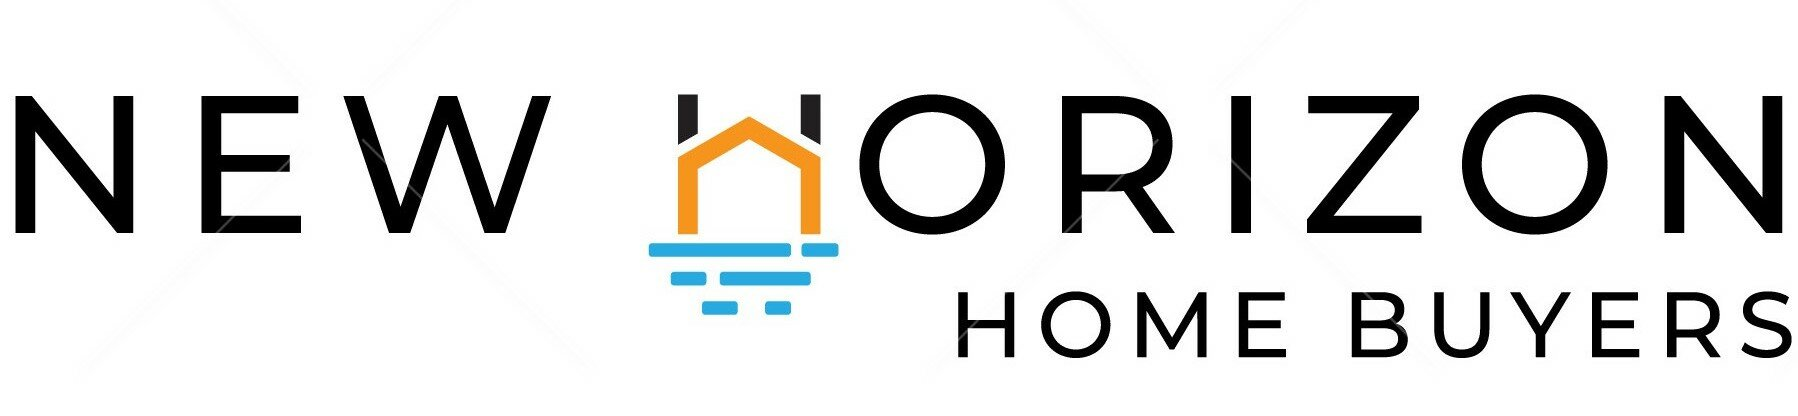 New Horizon Home Buyers logo